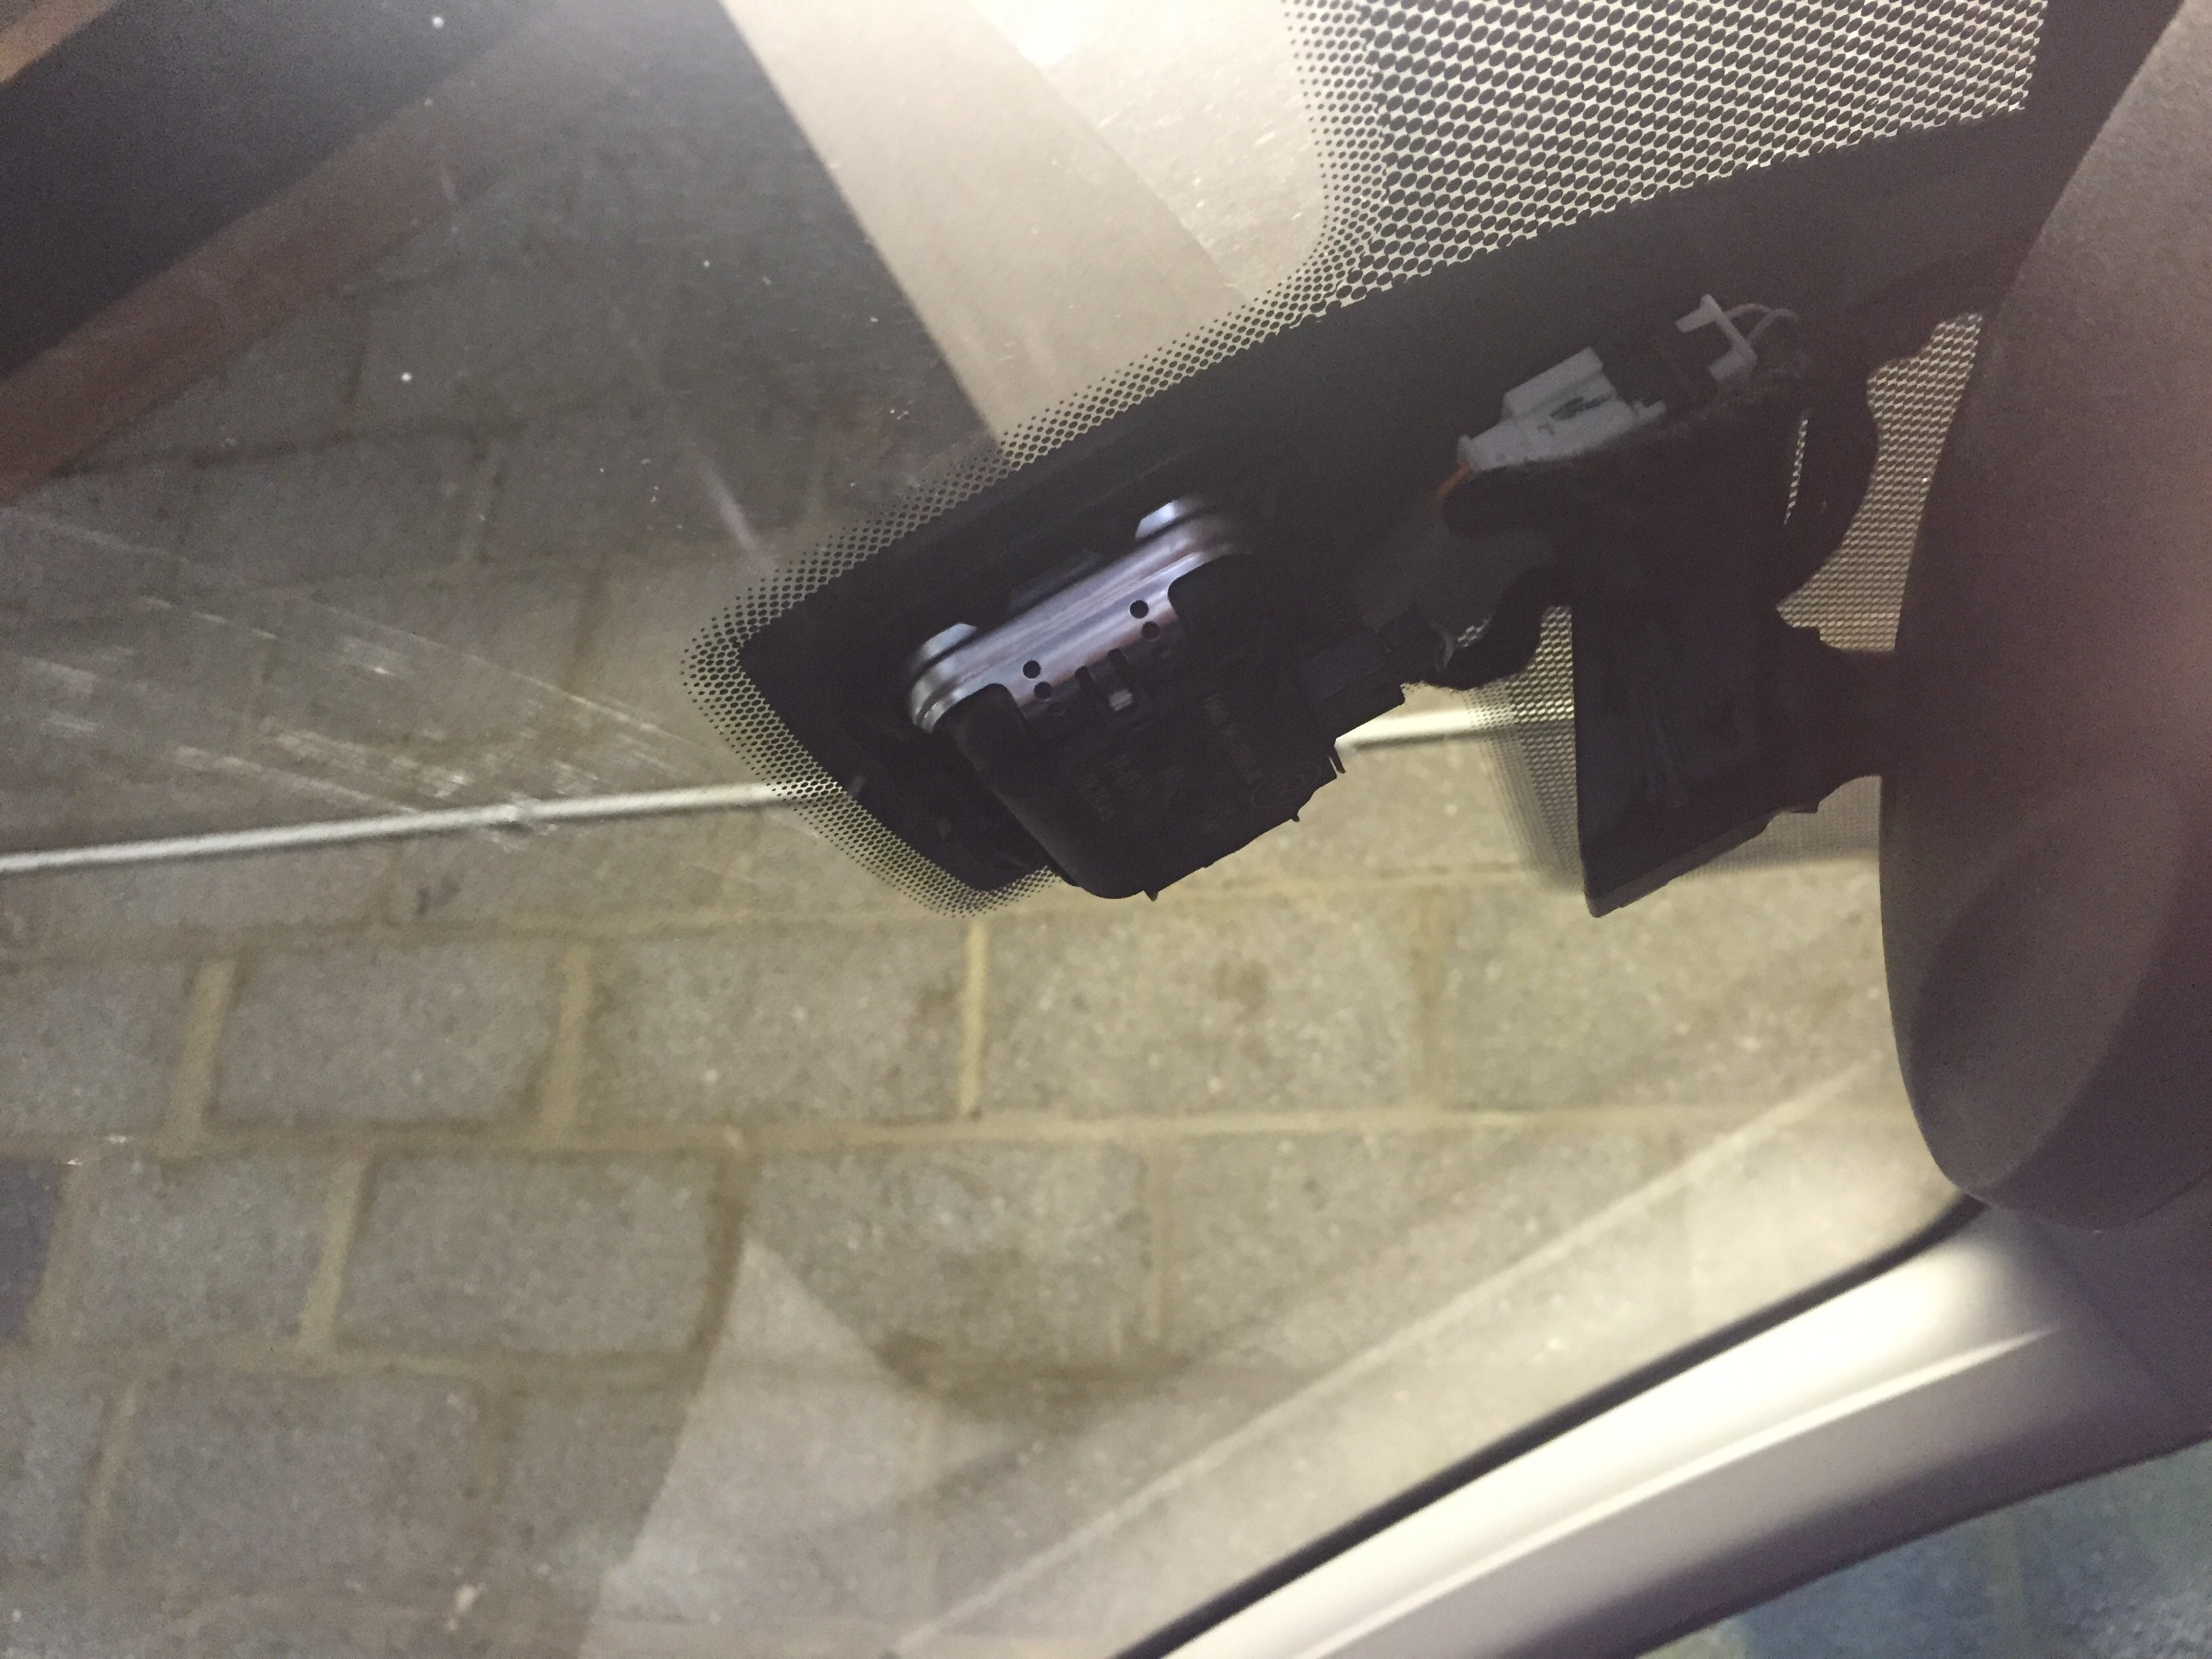 Ford Kuga receiving no Gps signals and thinks it is in a